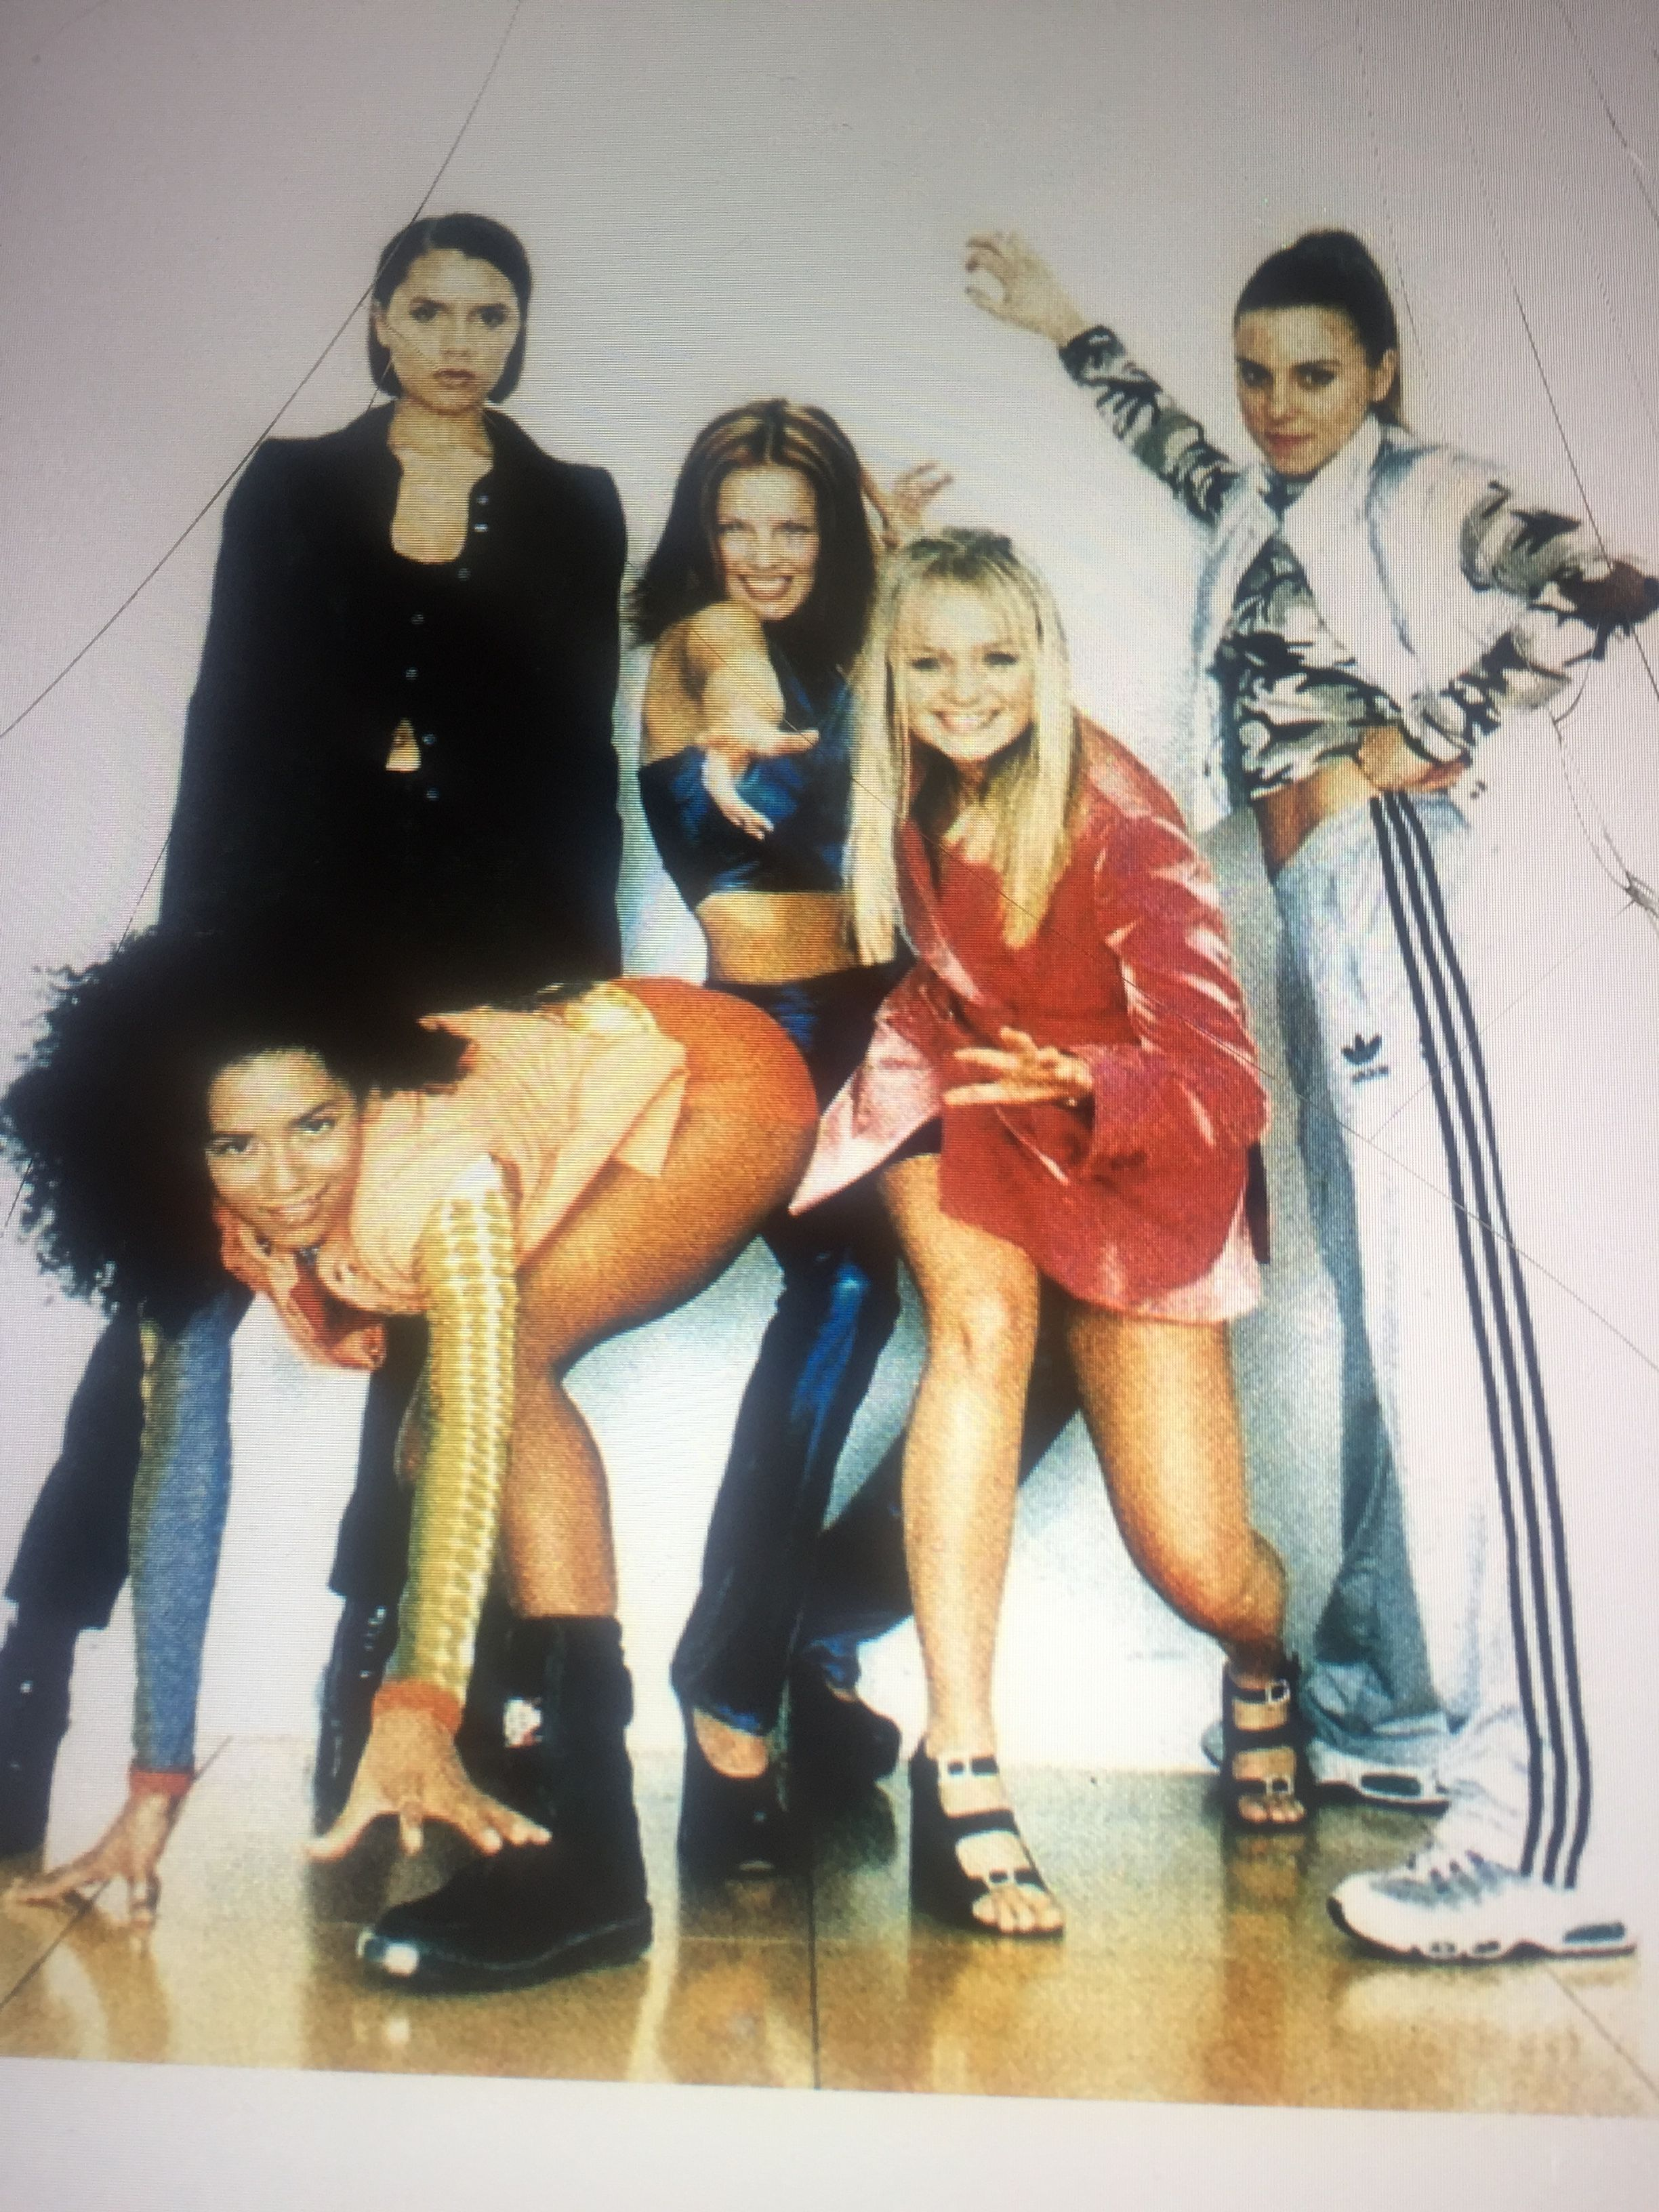 Pin by Krystal Bailey on spice in 2019 | Spice girls, Girl power, Spices